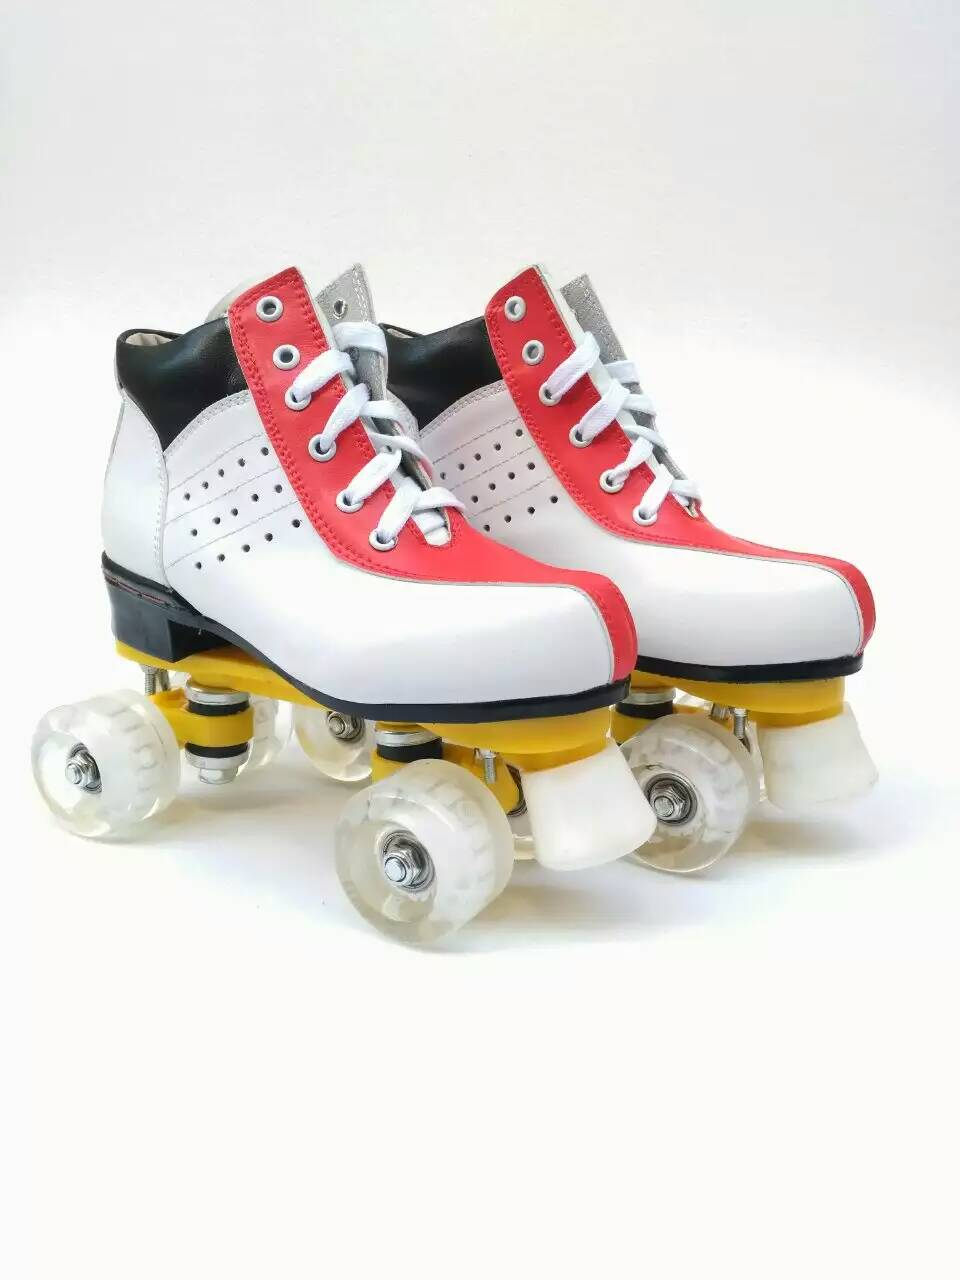 2017 New style arrival Wholesale Price 4 Wheel Speed Roller Skates Shoes free shipping ...